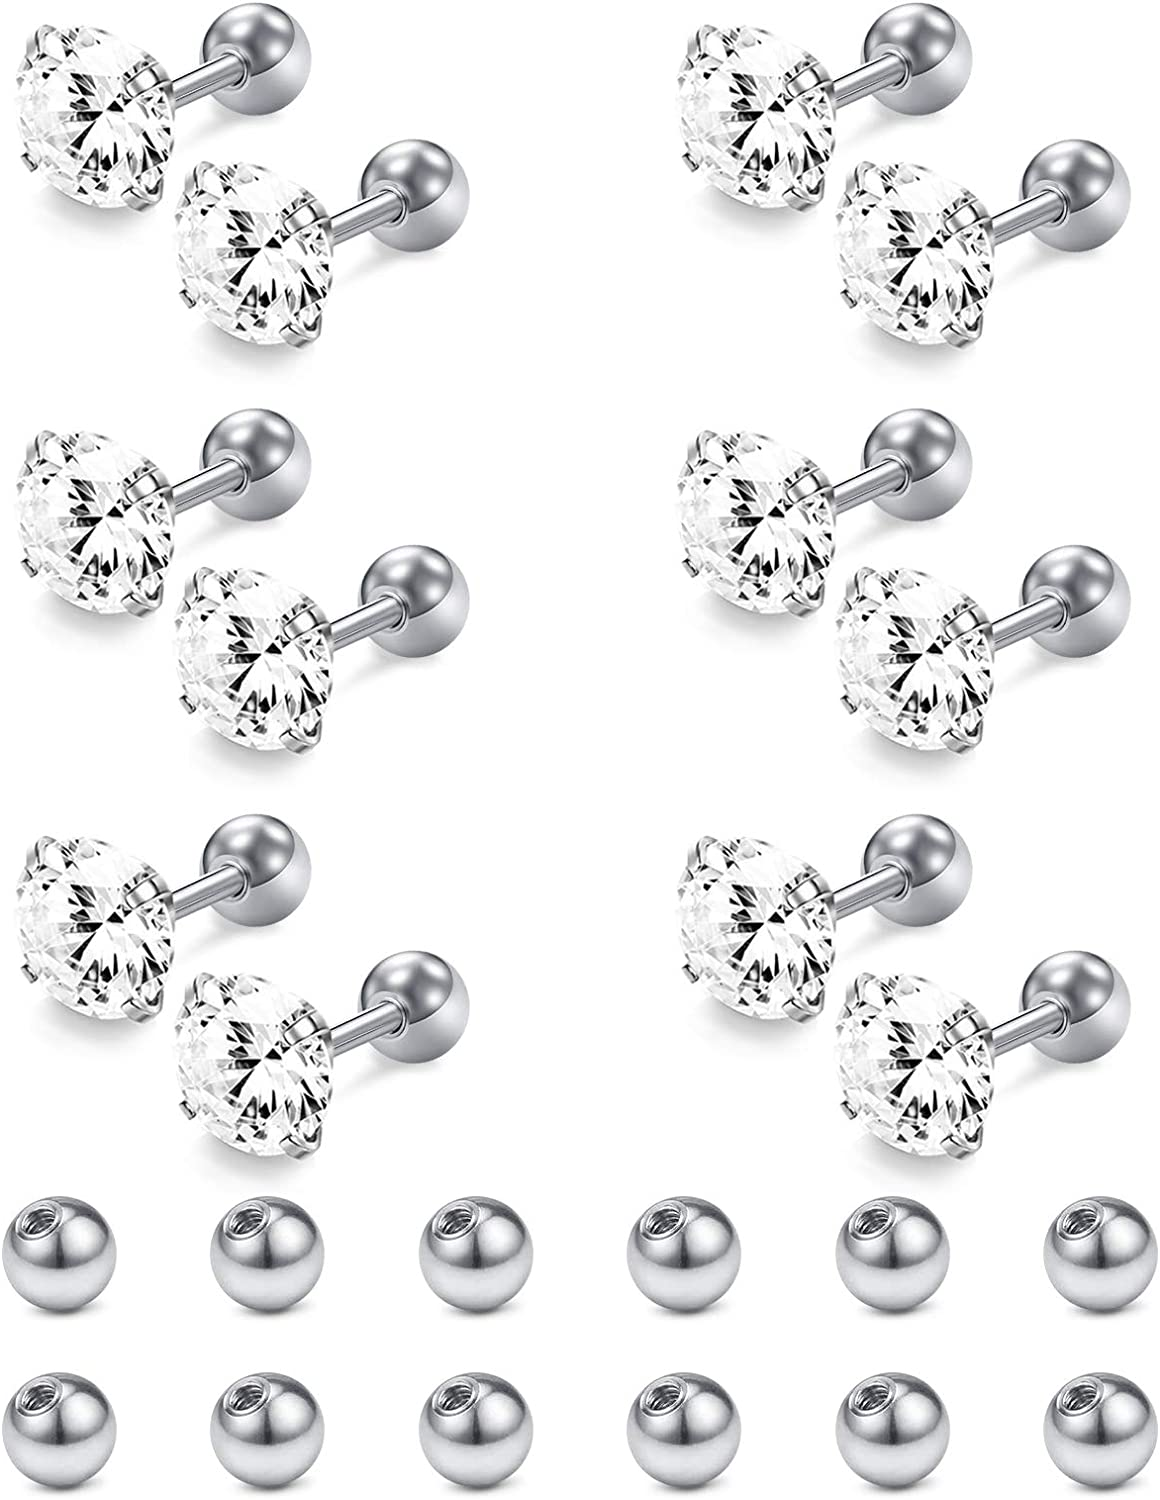 Briana Williams 6pairs 18g Stud Earrings Stainless Steel Cartilage Helix Tragus Earring Studs Piercing Jewelry 6mm Studs Bar 3-8mm Clear Black CZ with Replacement Balls